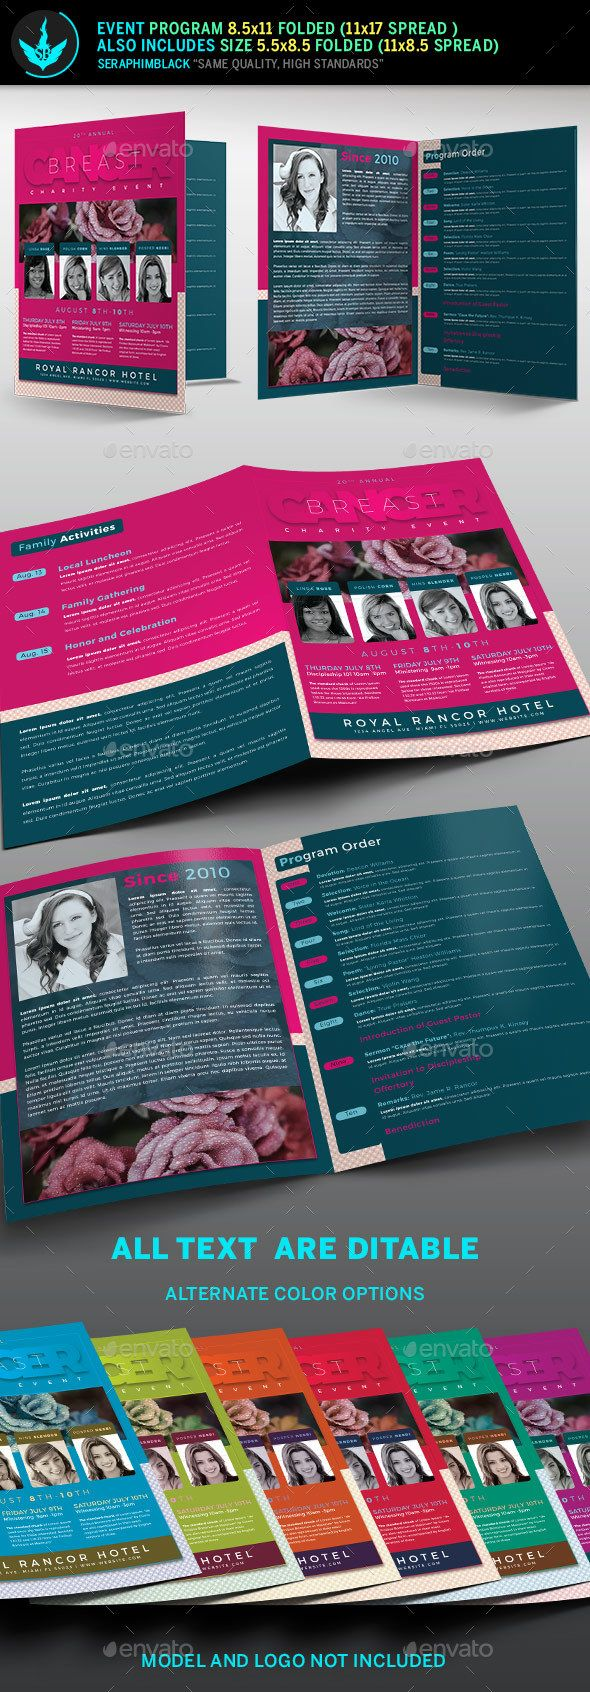 Breast Cancer Charity Event Program Template Program Template - Auction brochure template